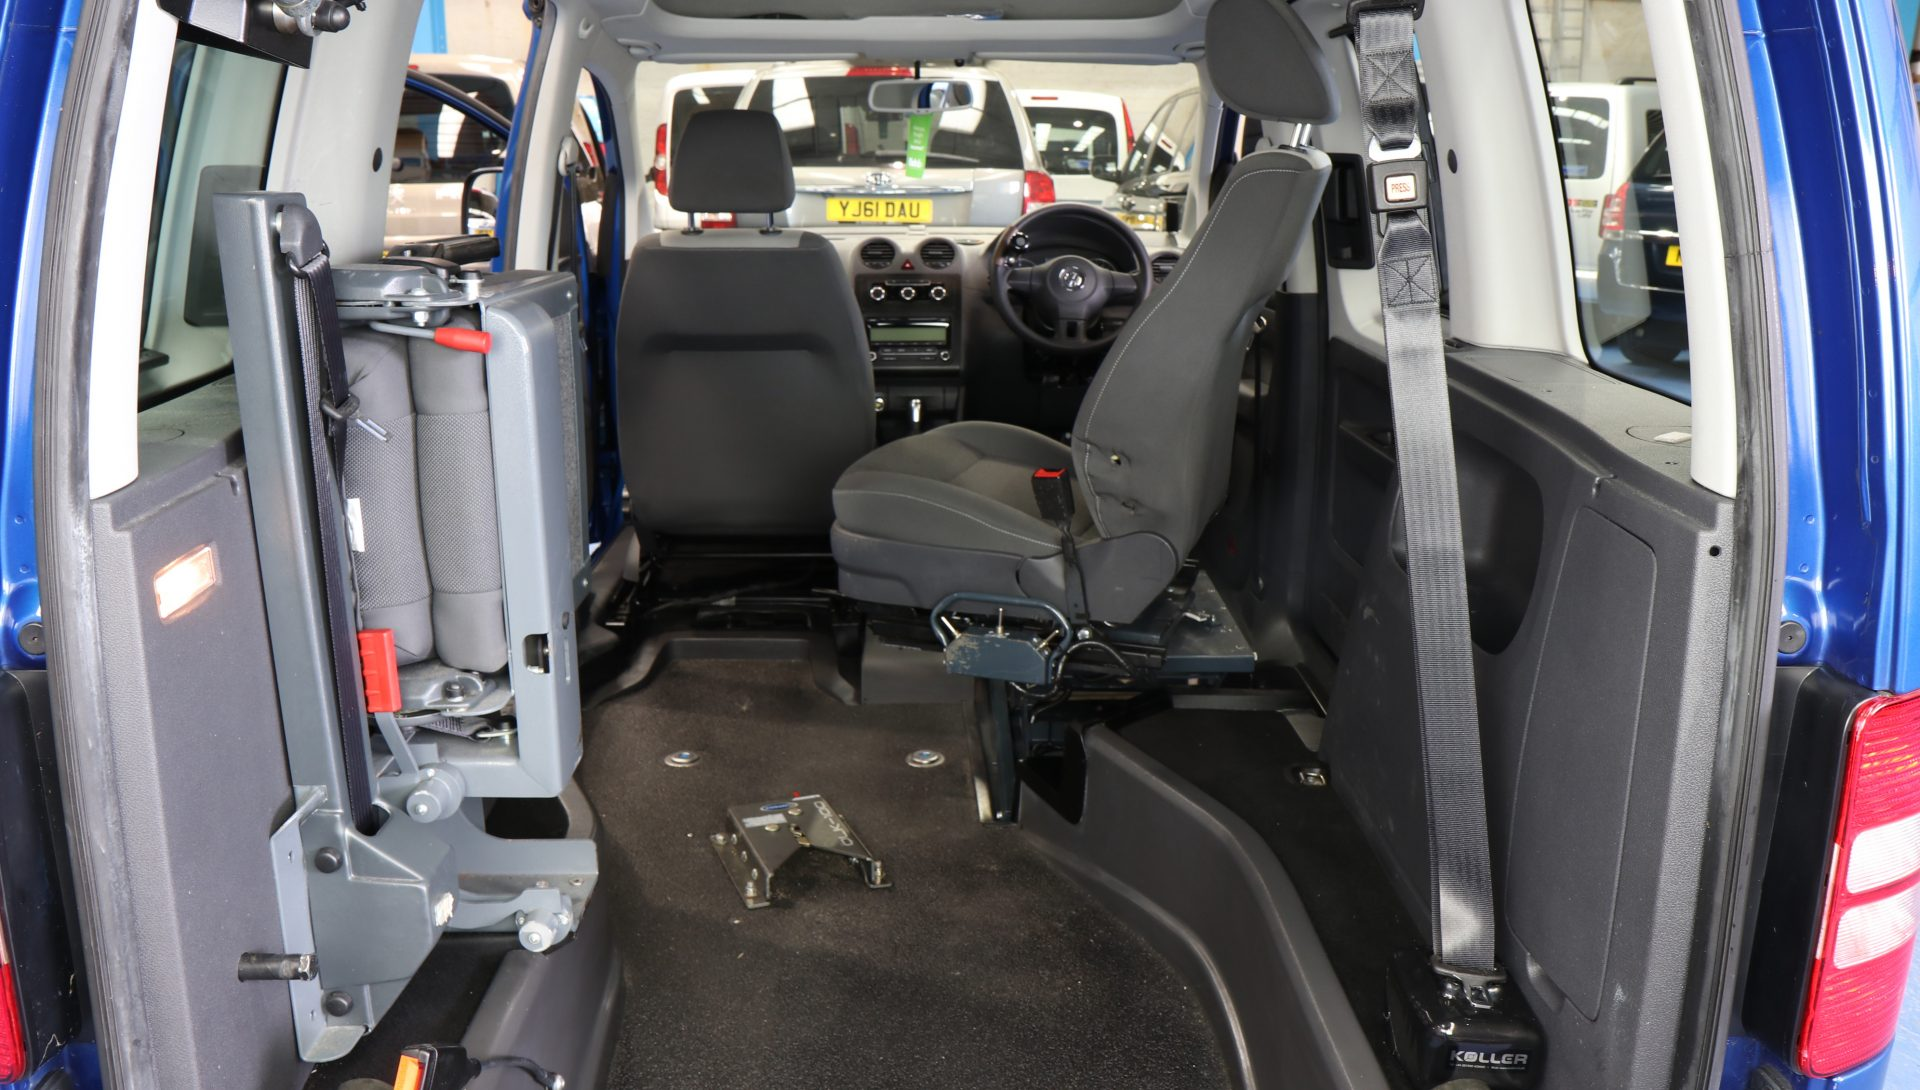 Caddy disabled Transfer to drive car bk11